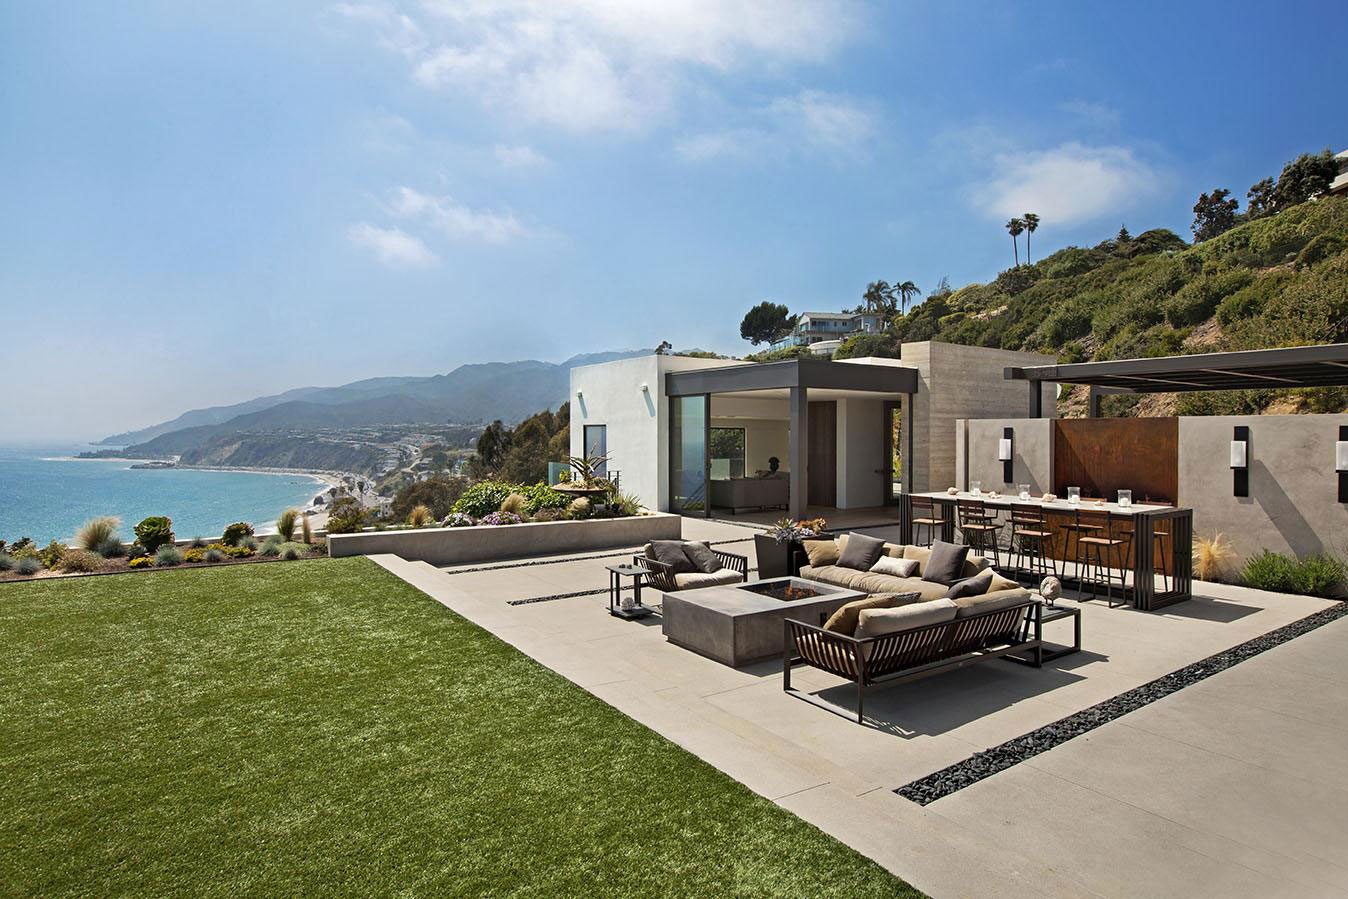 Clifftop House in Pacific Palisades, Los Angeles